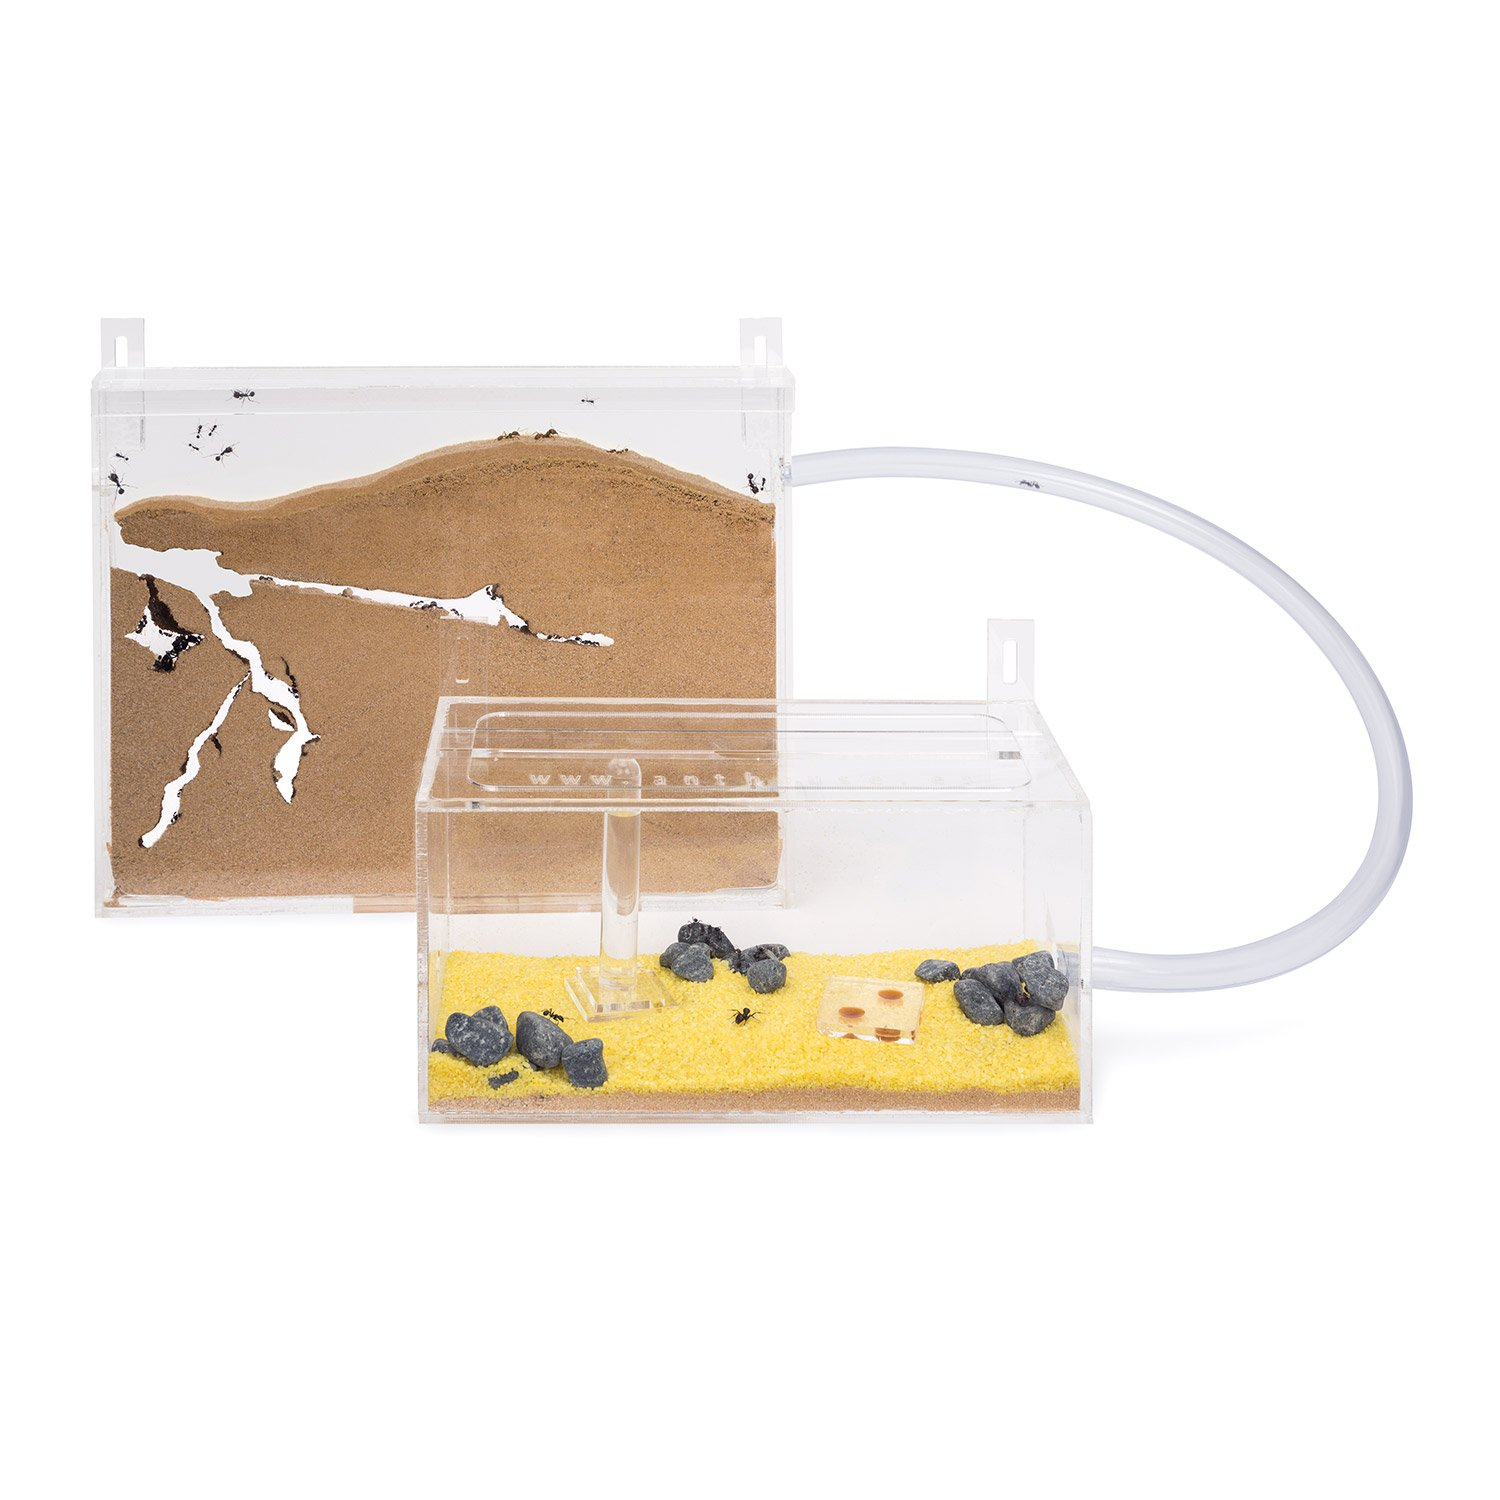 Ant Farm Wall Kit BIG with free Ants and Queen - Educational formicarium for LIVE ants AntHouse